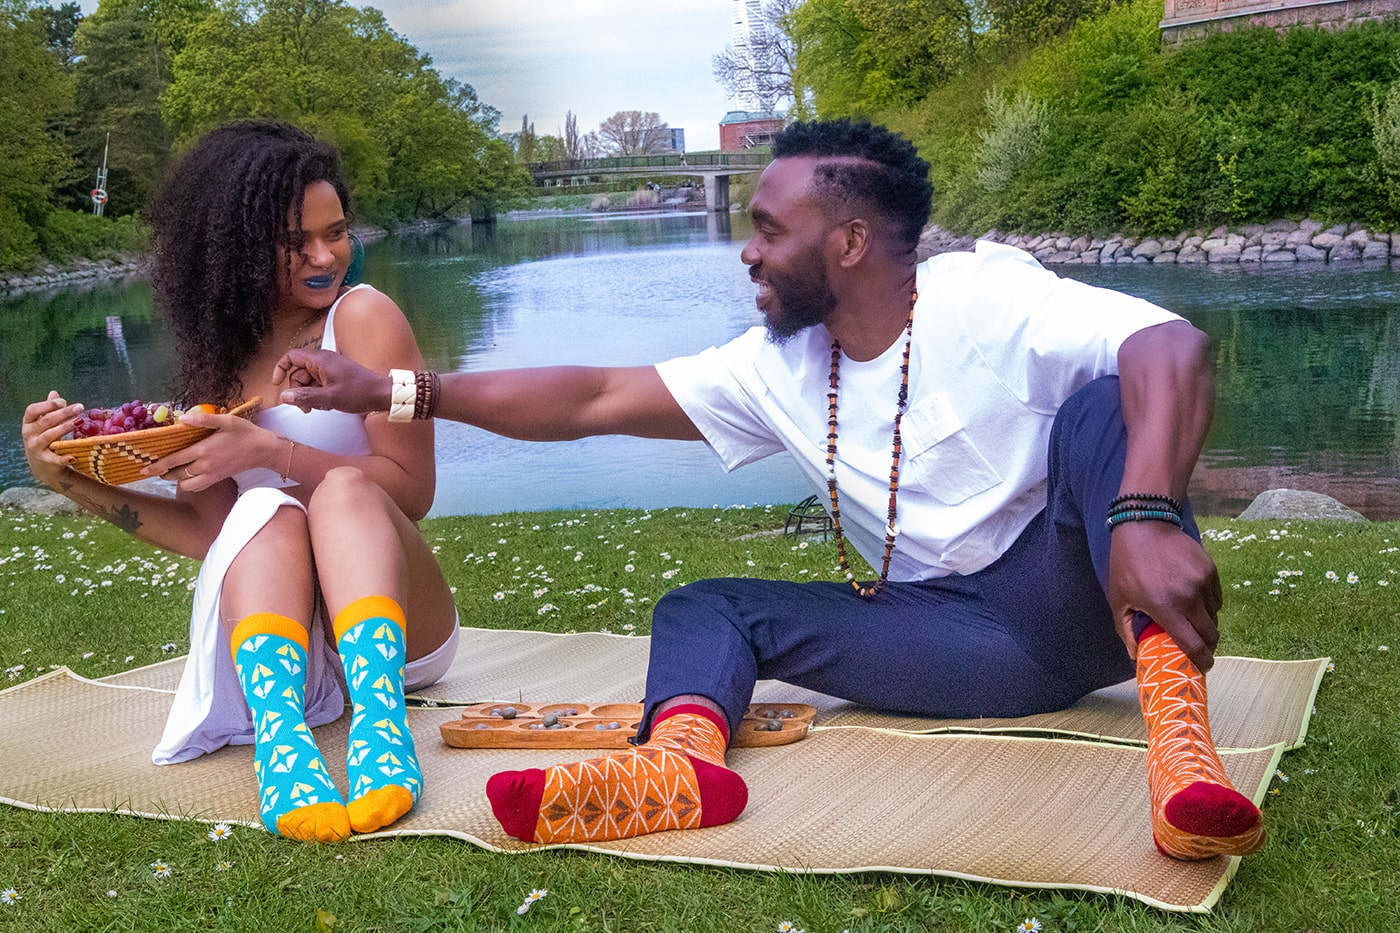 Black woman and man with colorful African bamboo socks eating fruits sitting by a river in Malmö